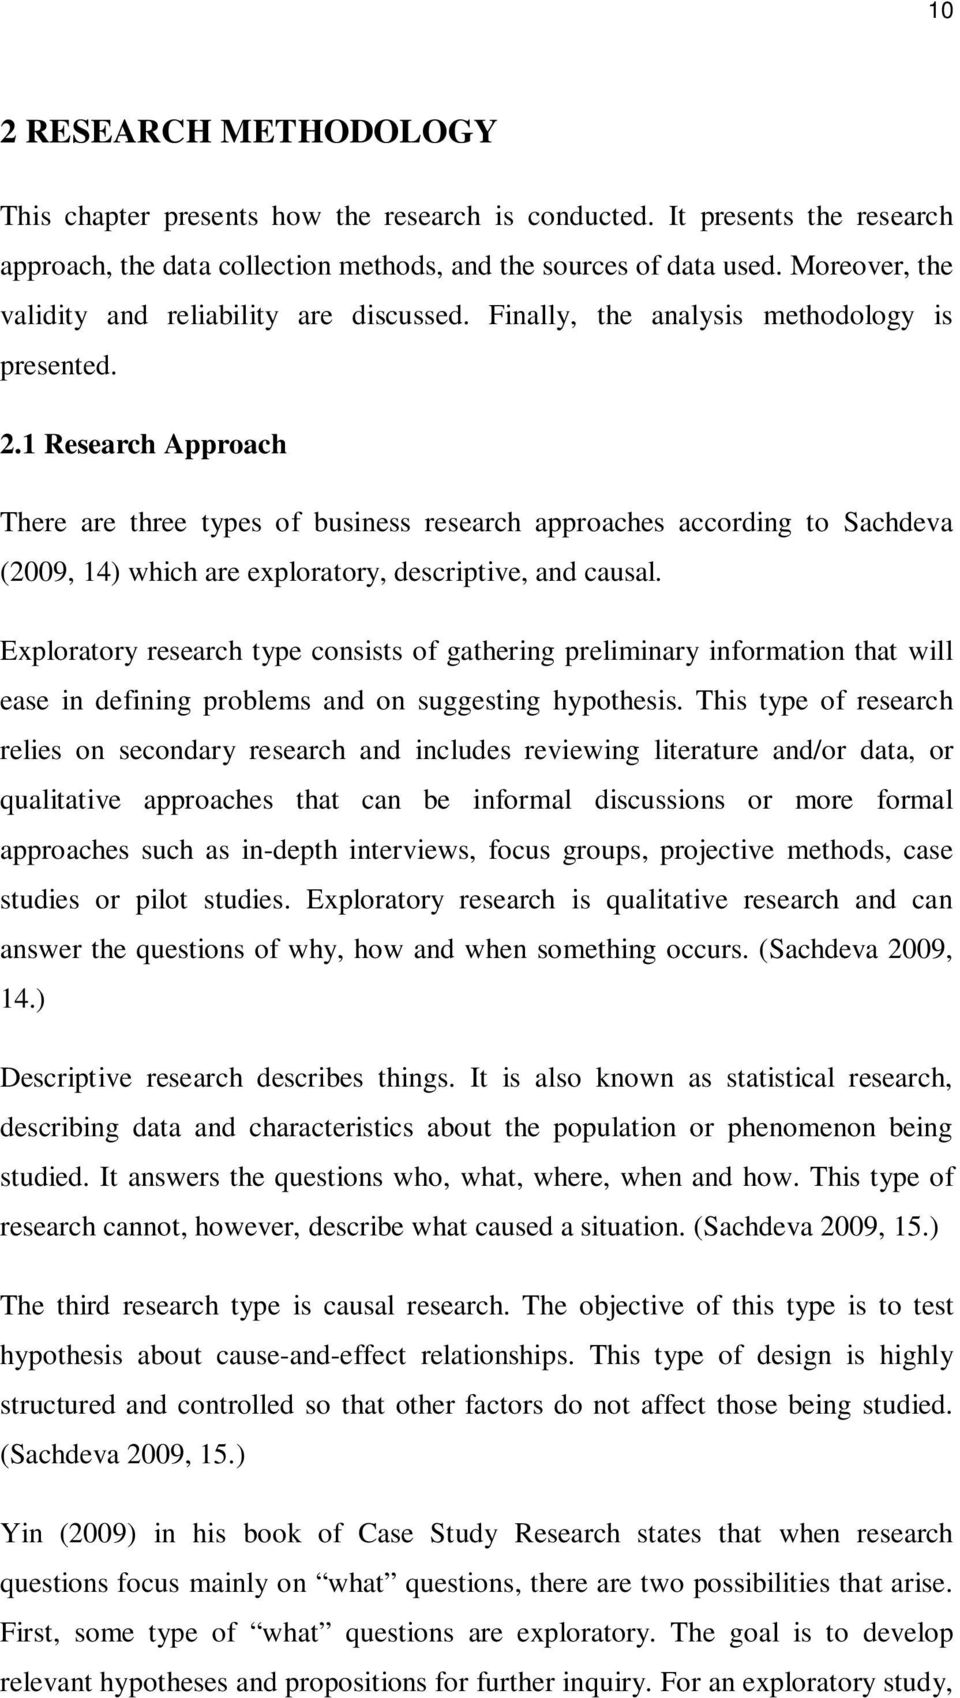 1 Research Approach There are three types of business research approaches according to Sachdeva (2009, 14) which are exploratory, descriptive, and causal.